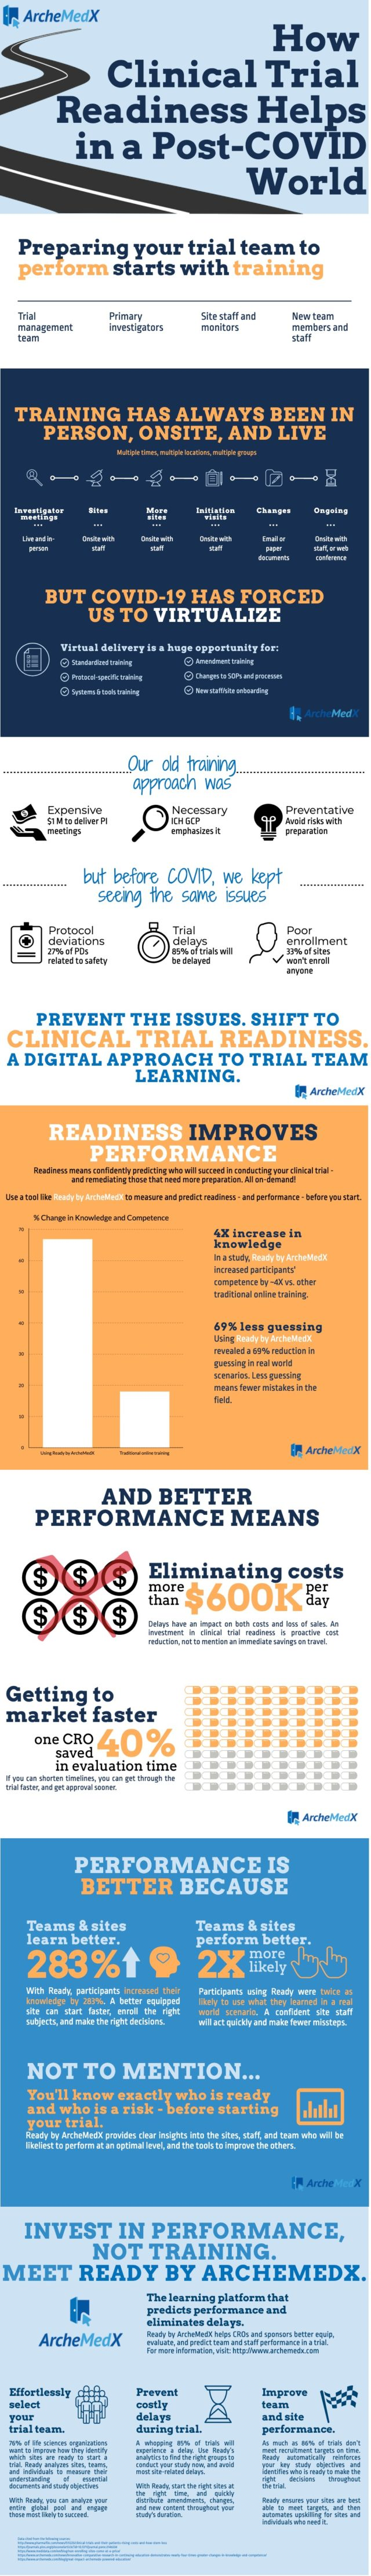 Infographic: clinical trial readiness